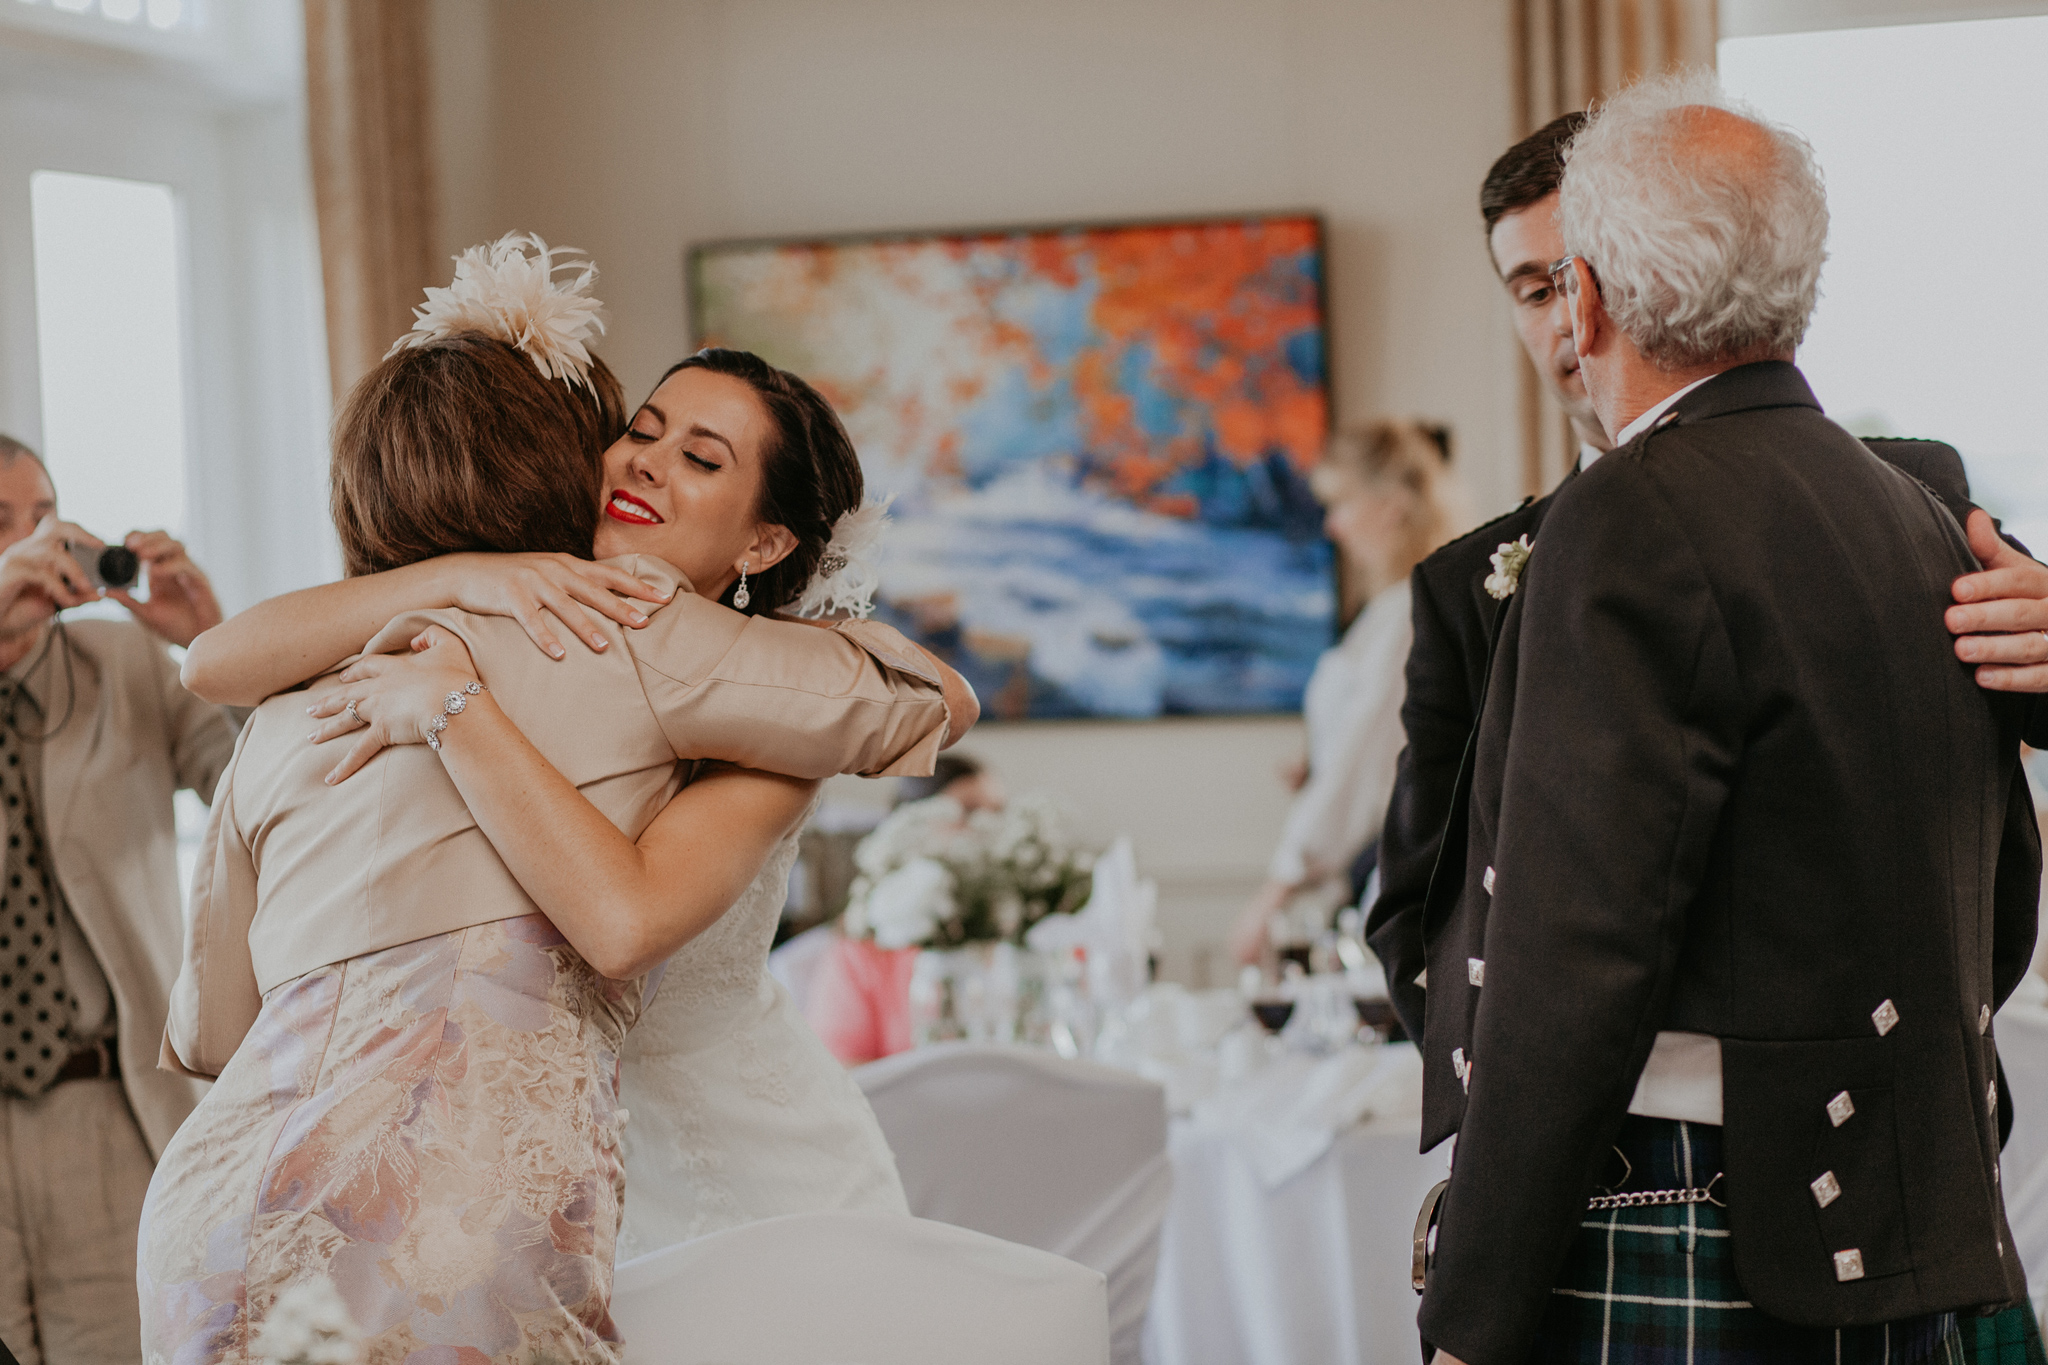 Couple embraces parents after speeches at wedding reception